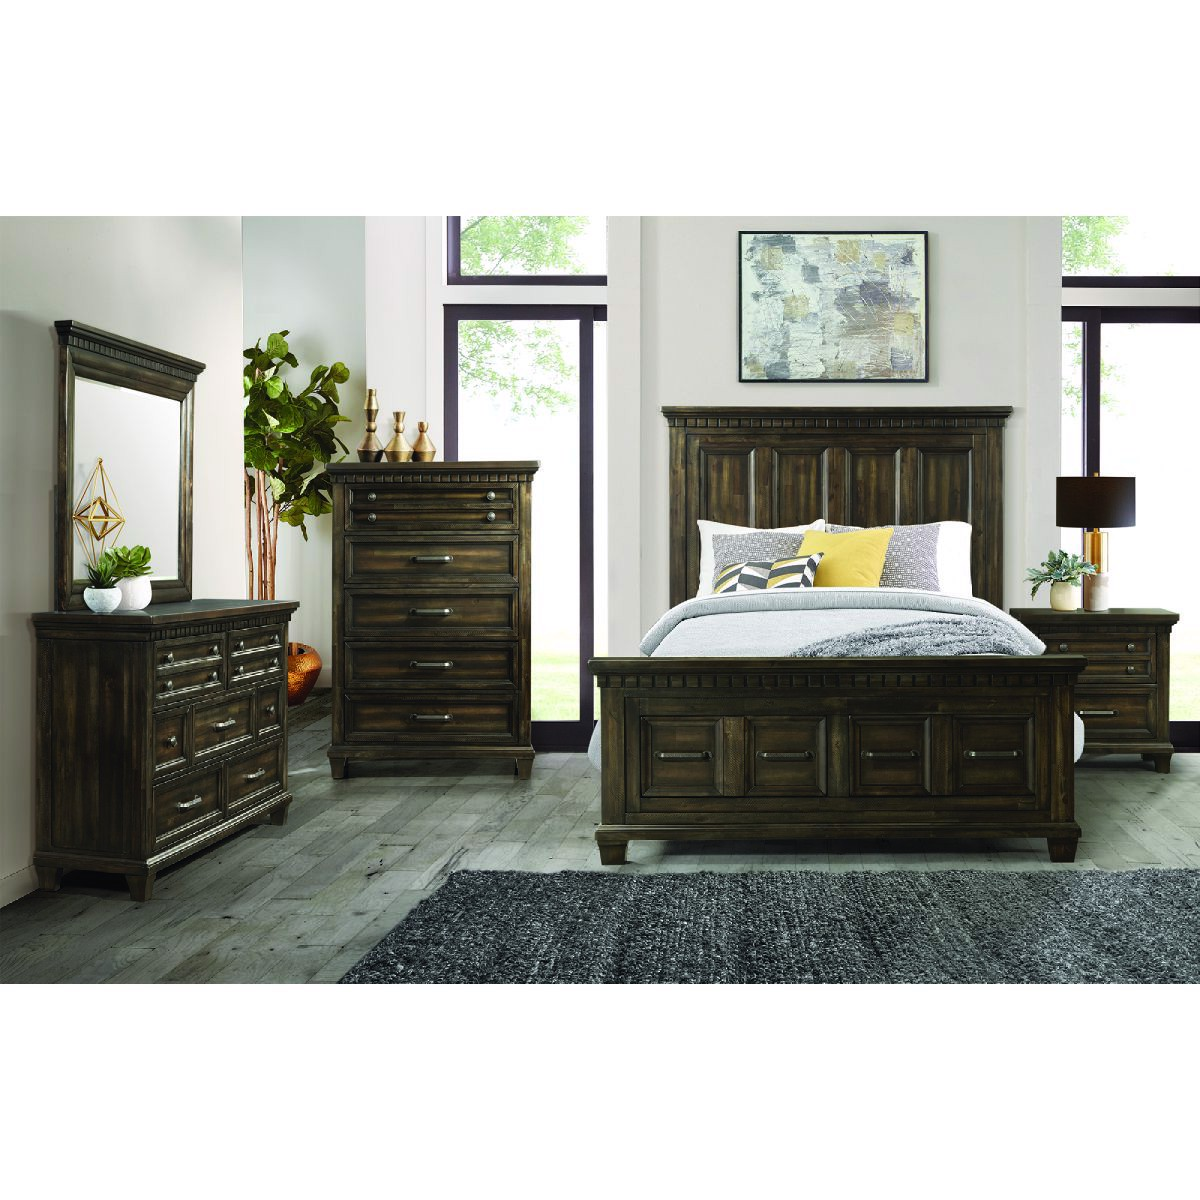 Picture of McCabe Chest of Drawers